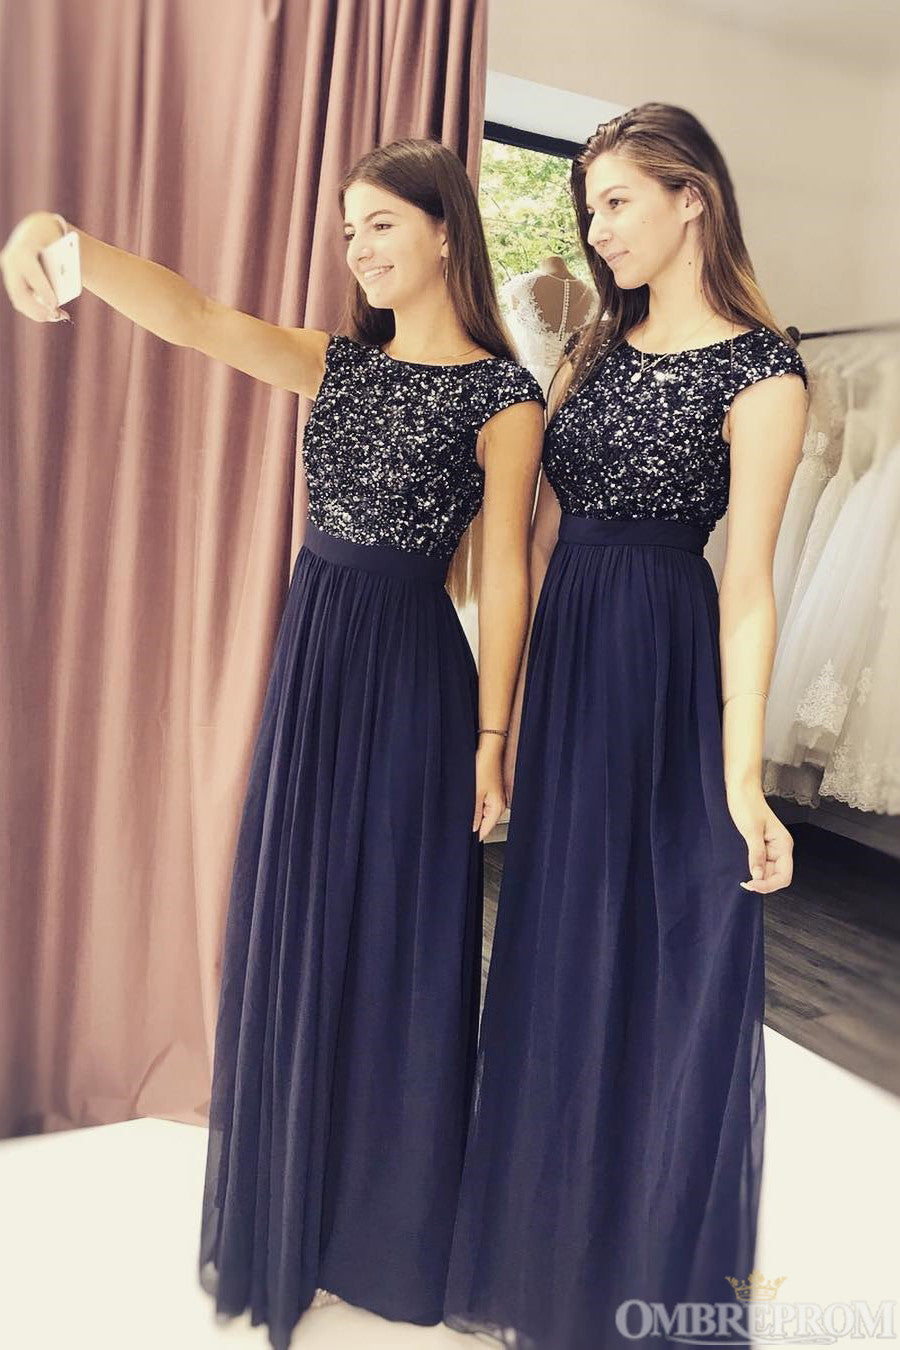 Round Neck Cap Sleeves Sparkle Sequins Long Bridesmaid Dress Prom Dresses D01